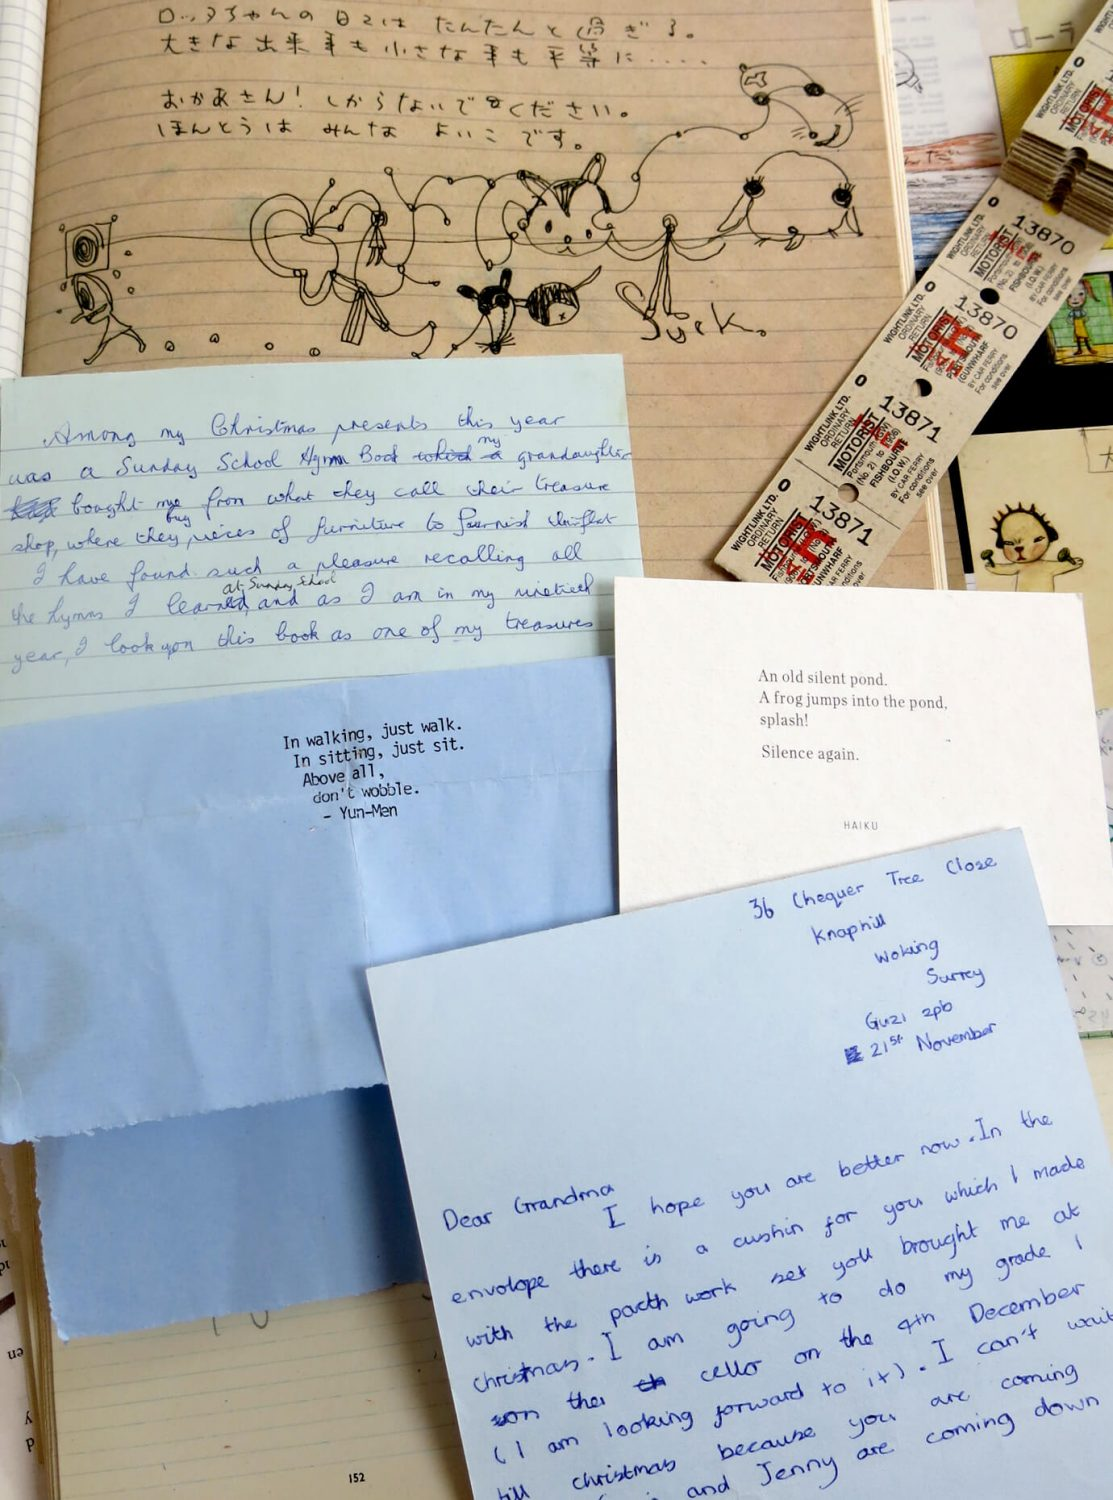 Anna's letters